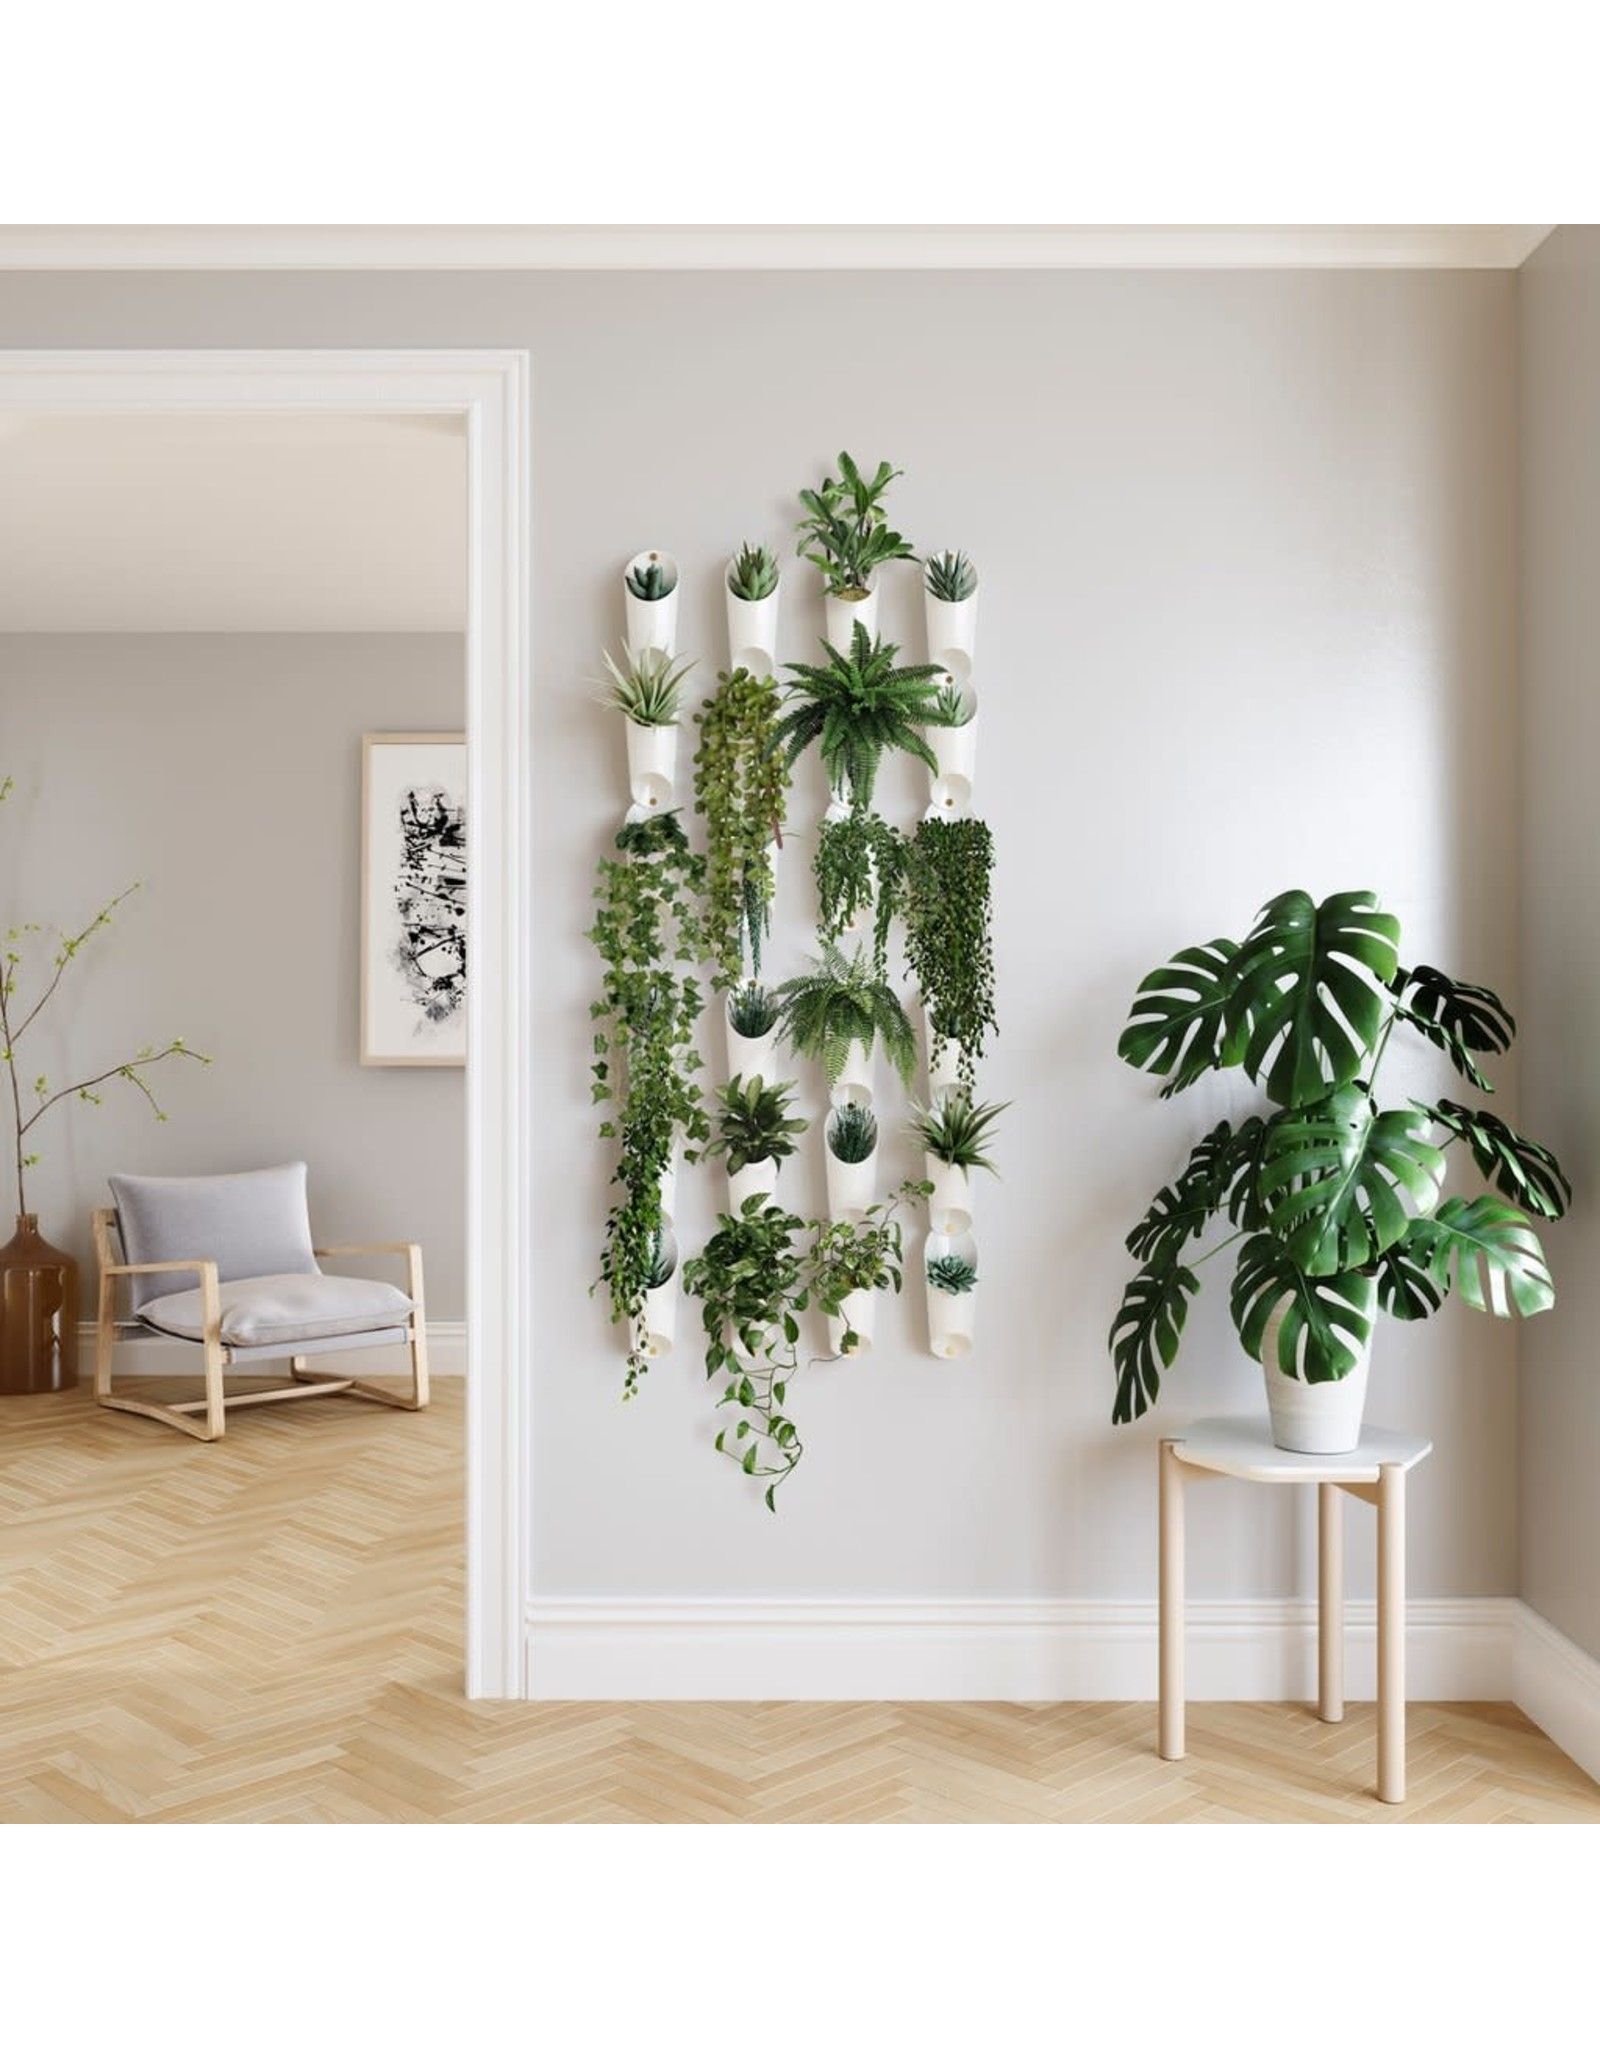 Floralink Wall Vessel in White - Set of 3